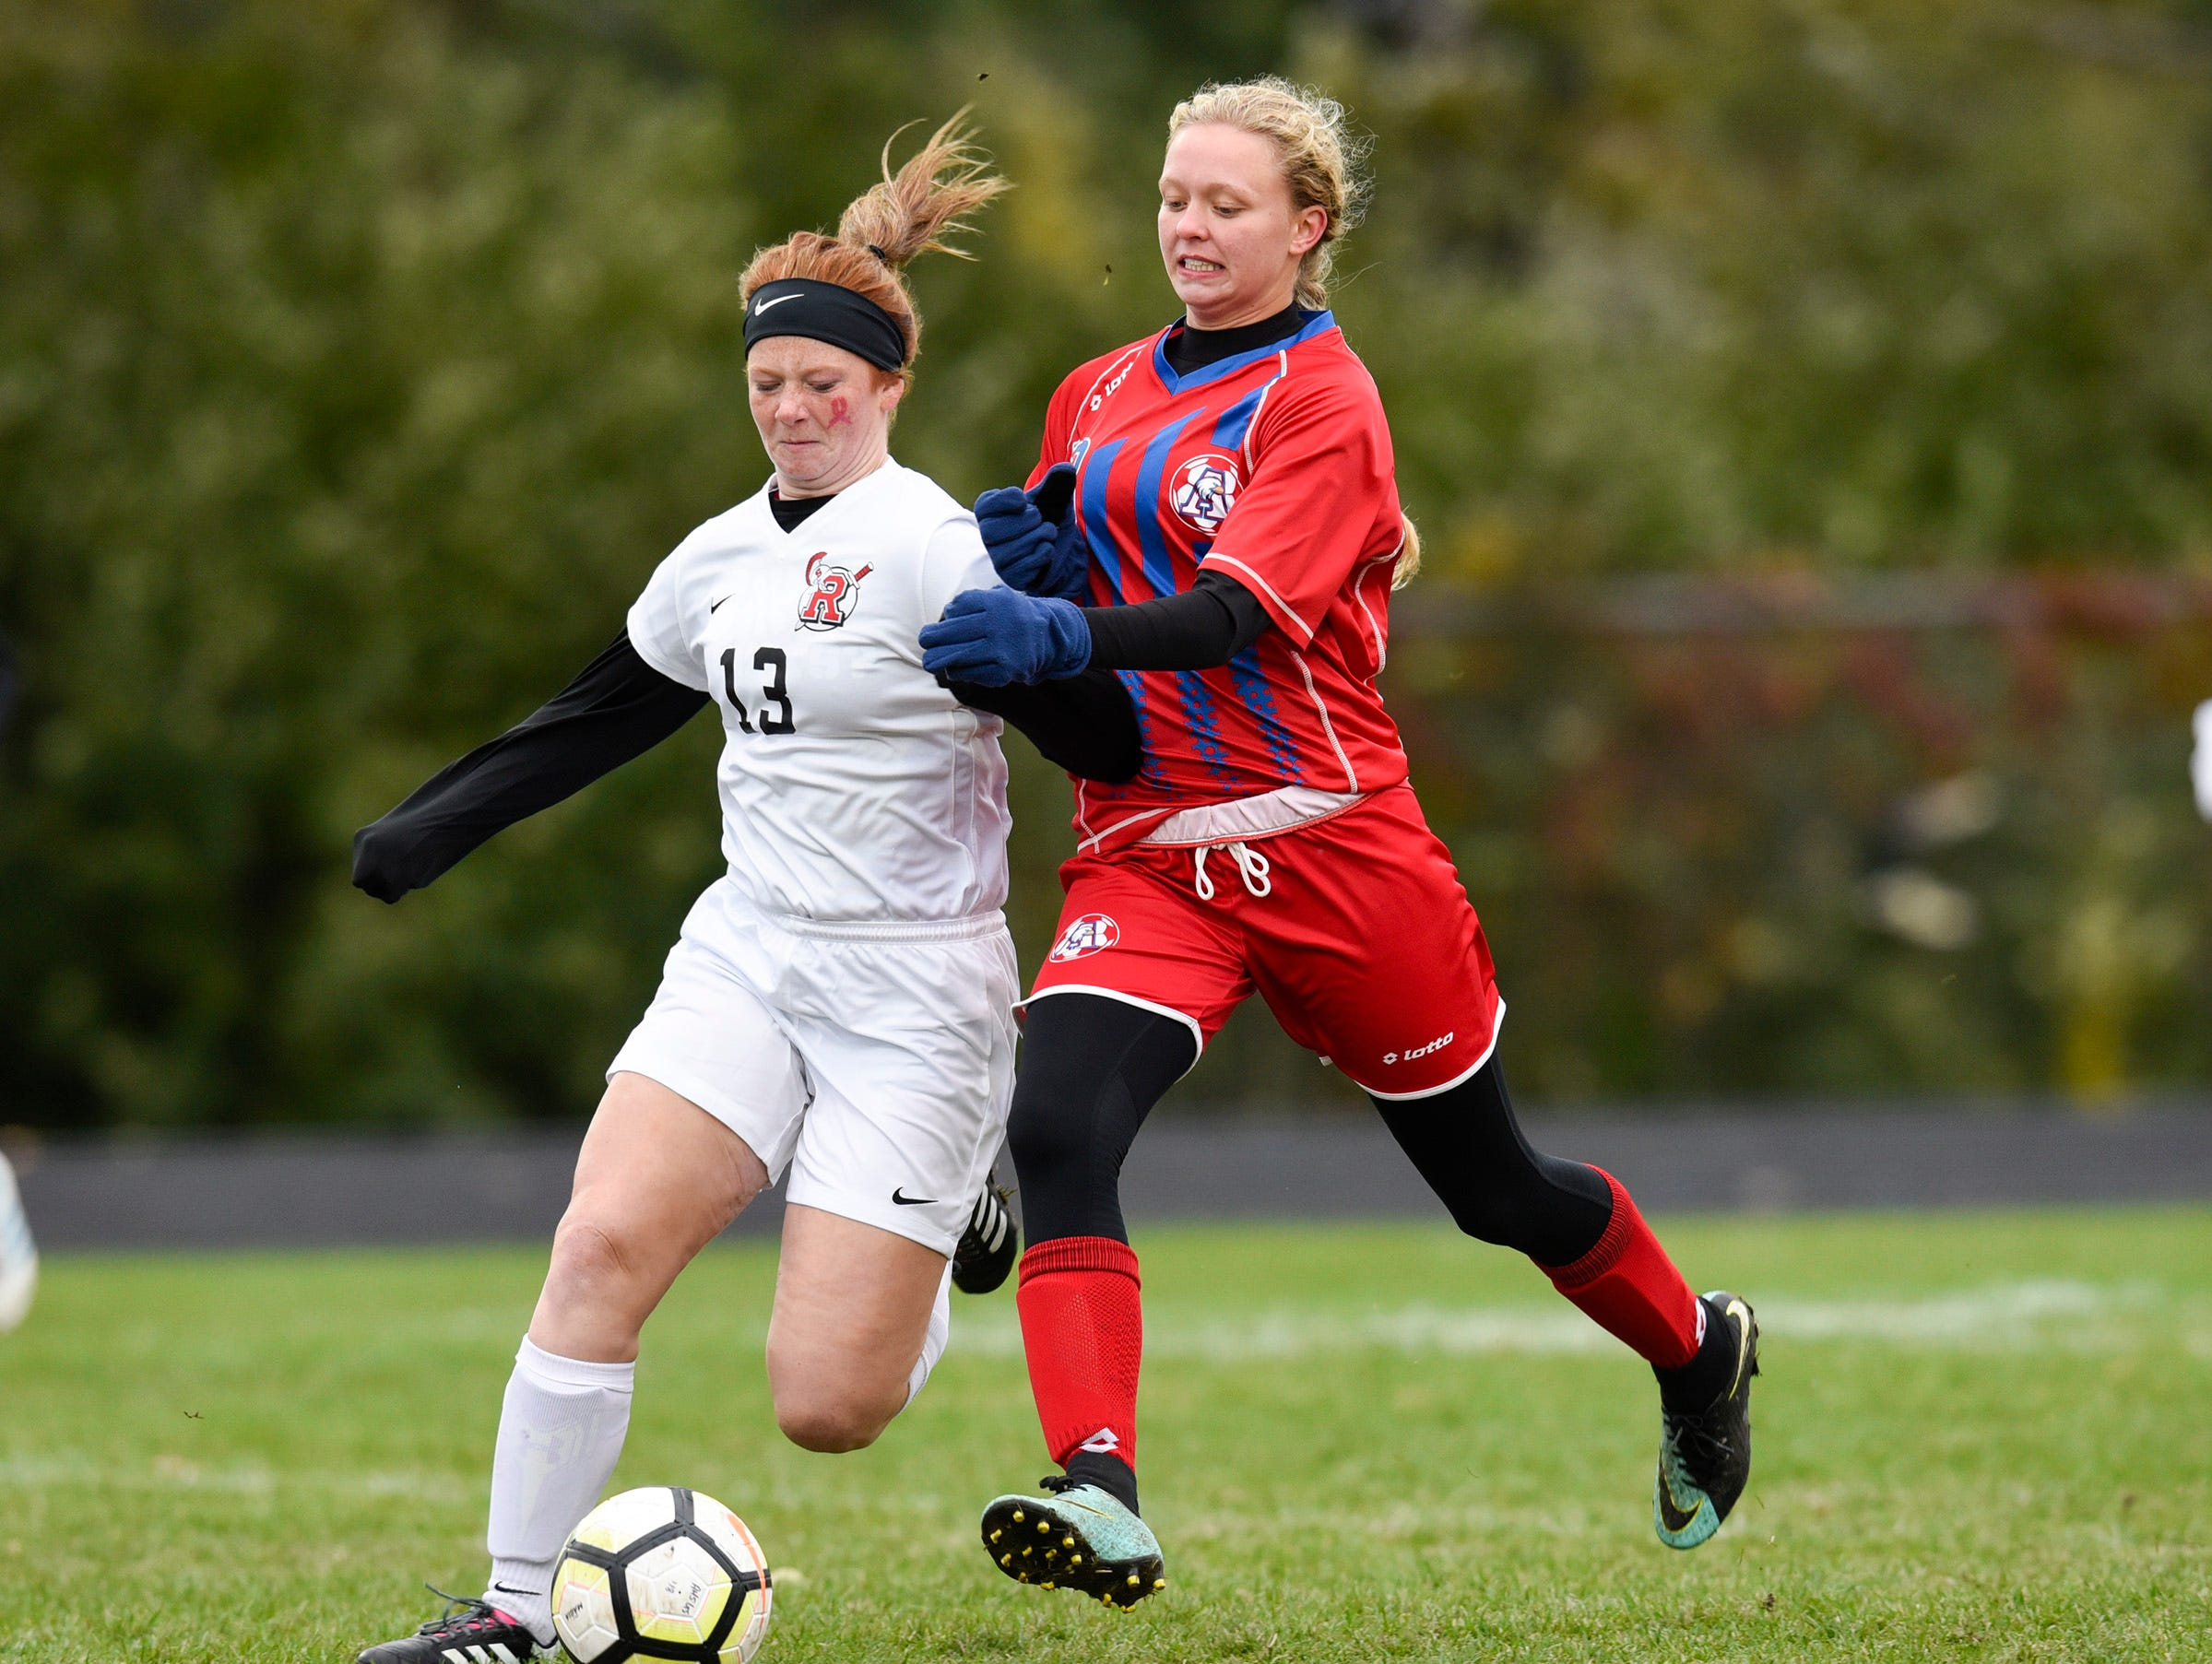 ROCORI's Bree Griffin tries to keep the ball from Apollo's Jessica Timpane during the first half Thursday, Oct. 11, at Apollo High School.